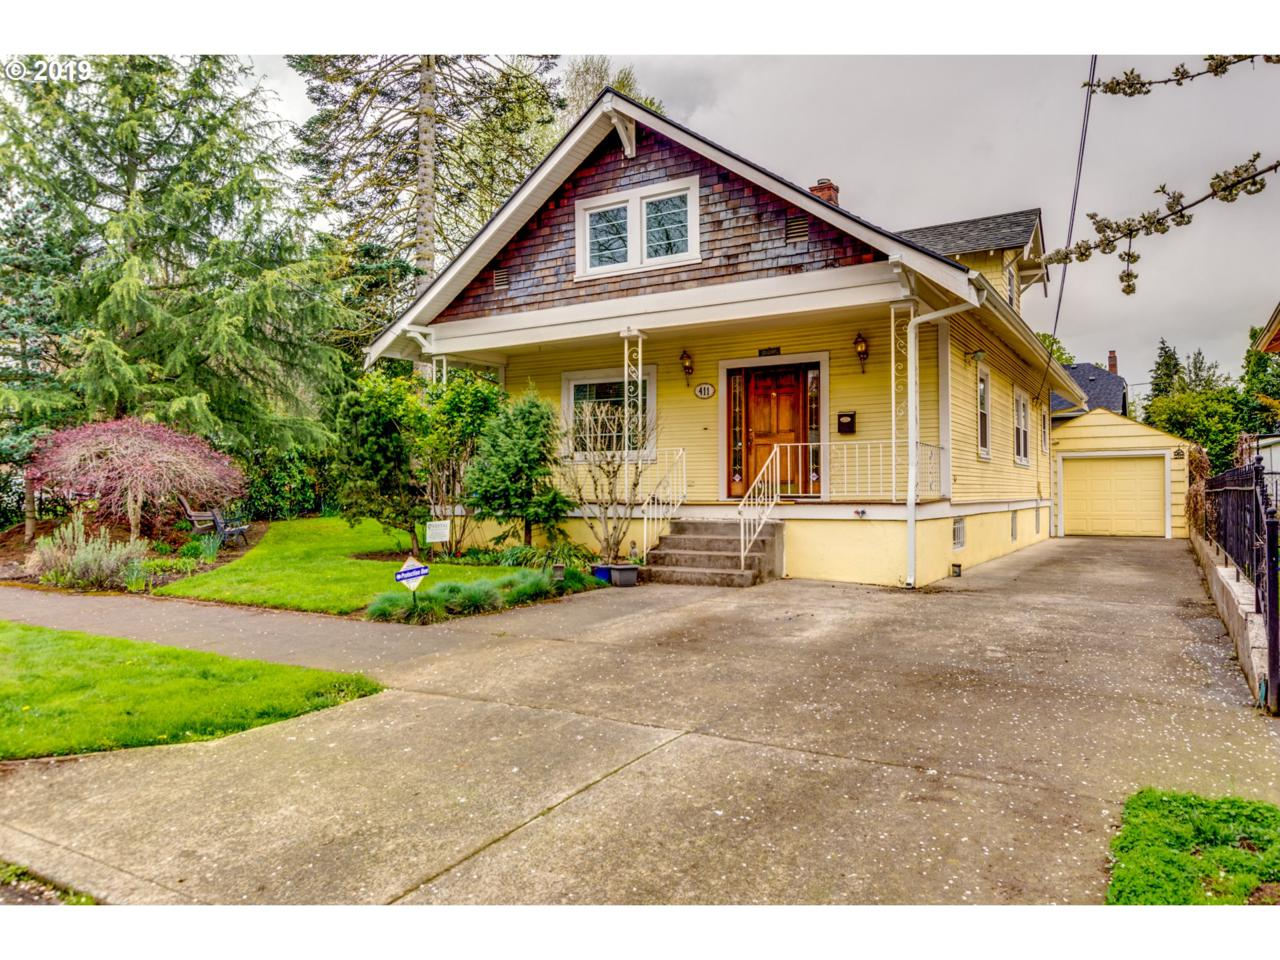 411 85TH Ave - Photo 1